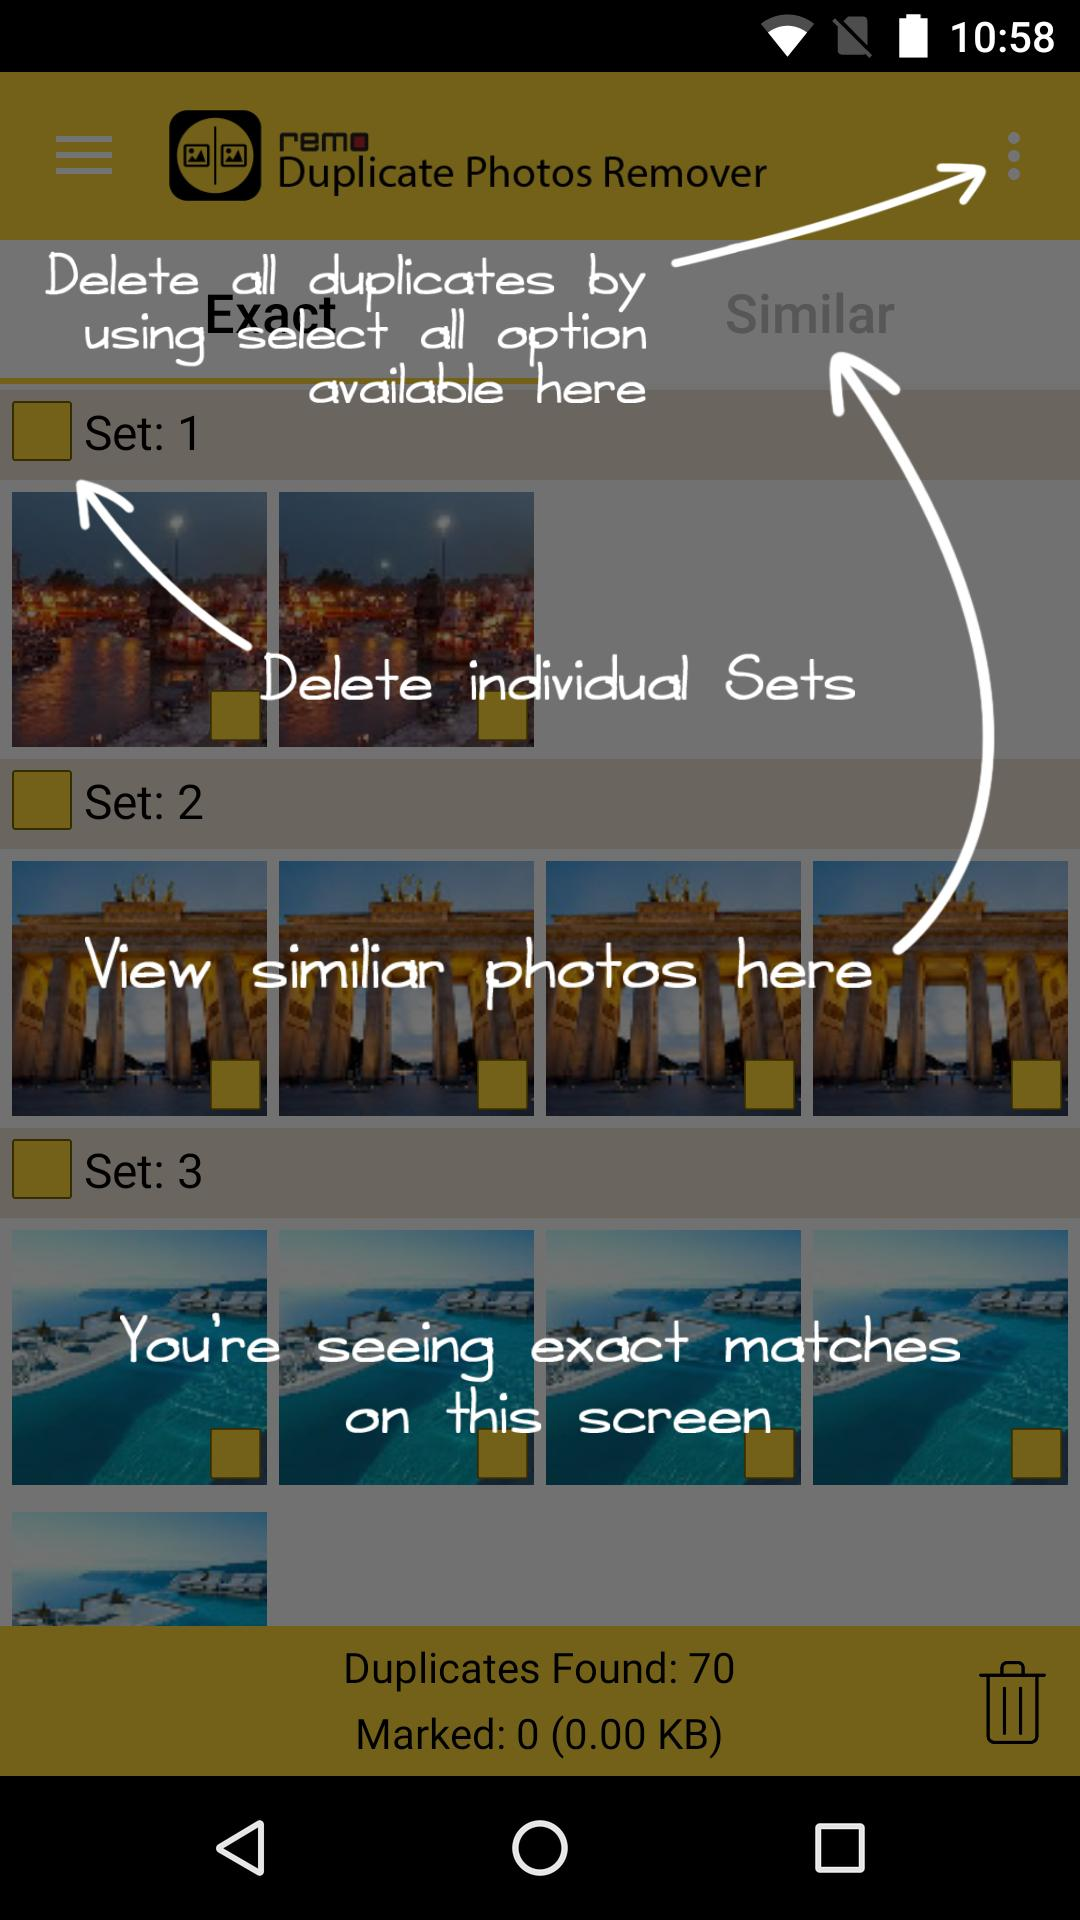 Remo Duplicate Photos Remover for Android - APK Download